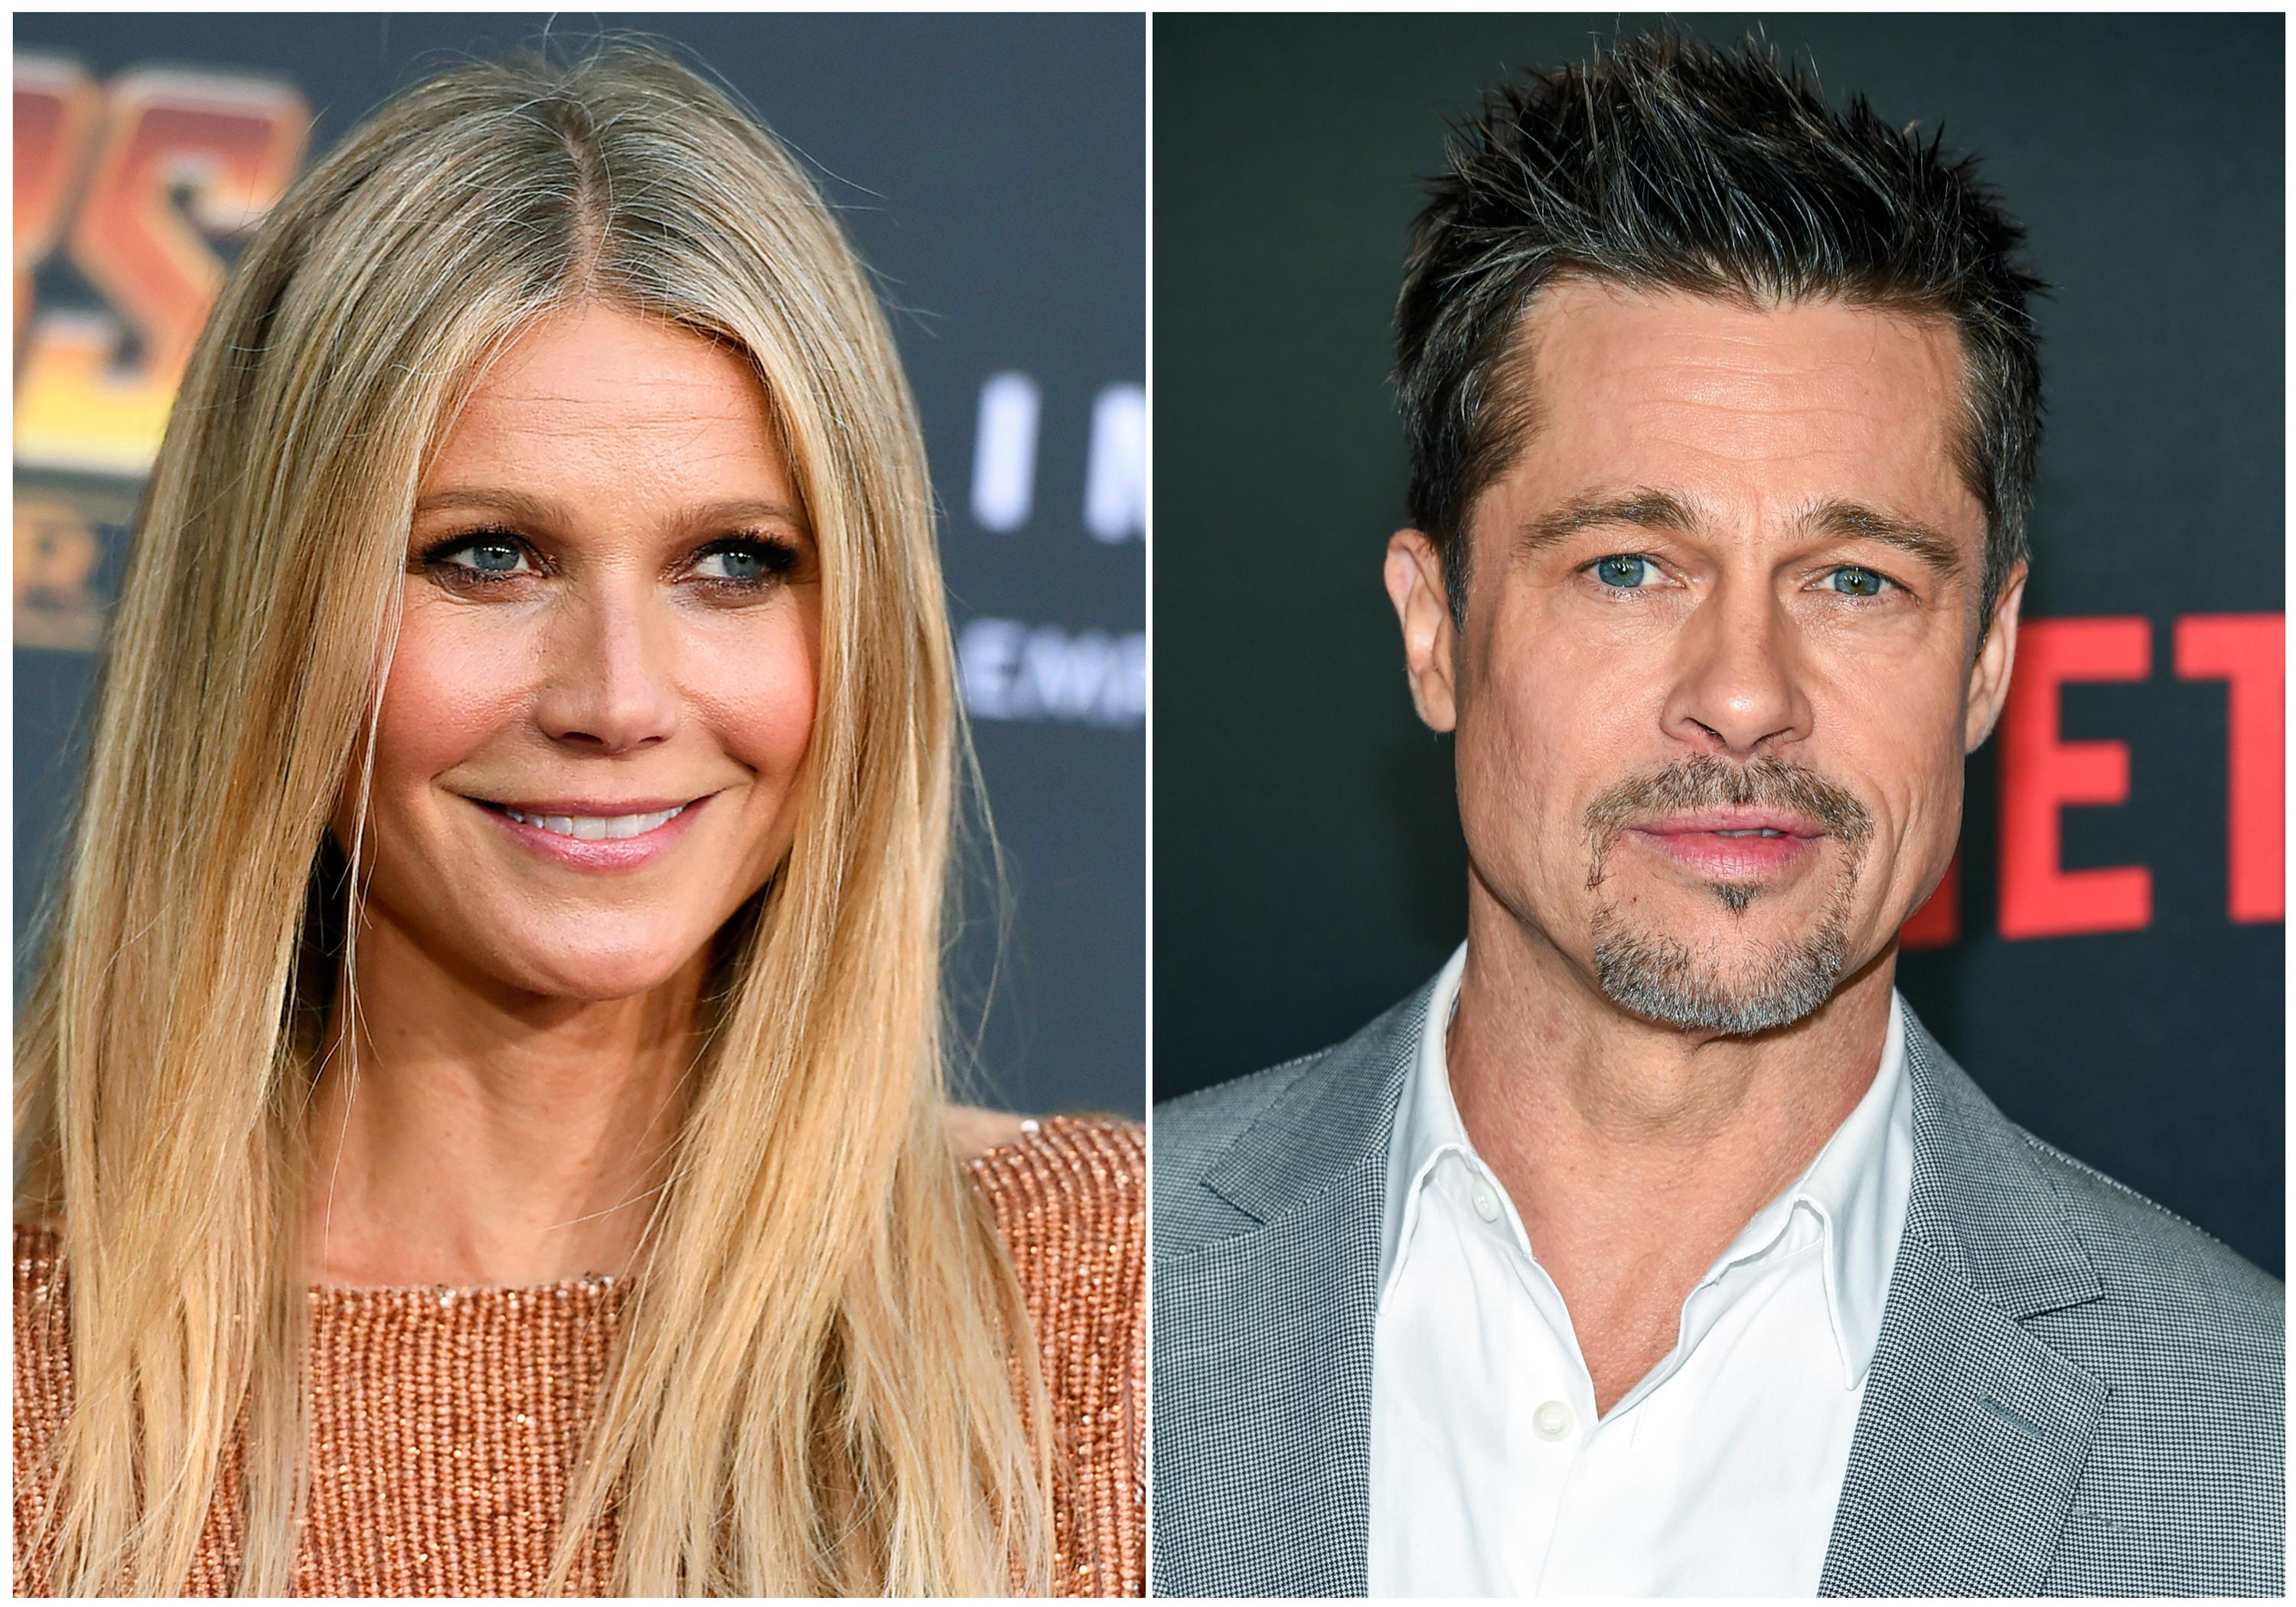 "This combination photo shows Gwyneth Paltrow at the world premiere of ""Avengers: Infinity War"" on April 23, 2018, in Los Angeles, left, and Brad Pitt at the premiere of Netflix's ""Okja"" on June 8, 2017, in New York. Paltrow says ex-boyfriend Pitt threatened producer Harvey Weinstein after an alleged incident of sexual misconduct. The 45-year-old actress told ""The Howard Stern Show"" on Wednesday, May 23, 2018, that she was 22 when Weinstein placed her hands on her at a hotel and suggested they go to a bedroom for massages. Paltrow said she told Pitt what happened and the actor confronted Weinstein at a Broadway opening. (AP Photo)"